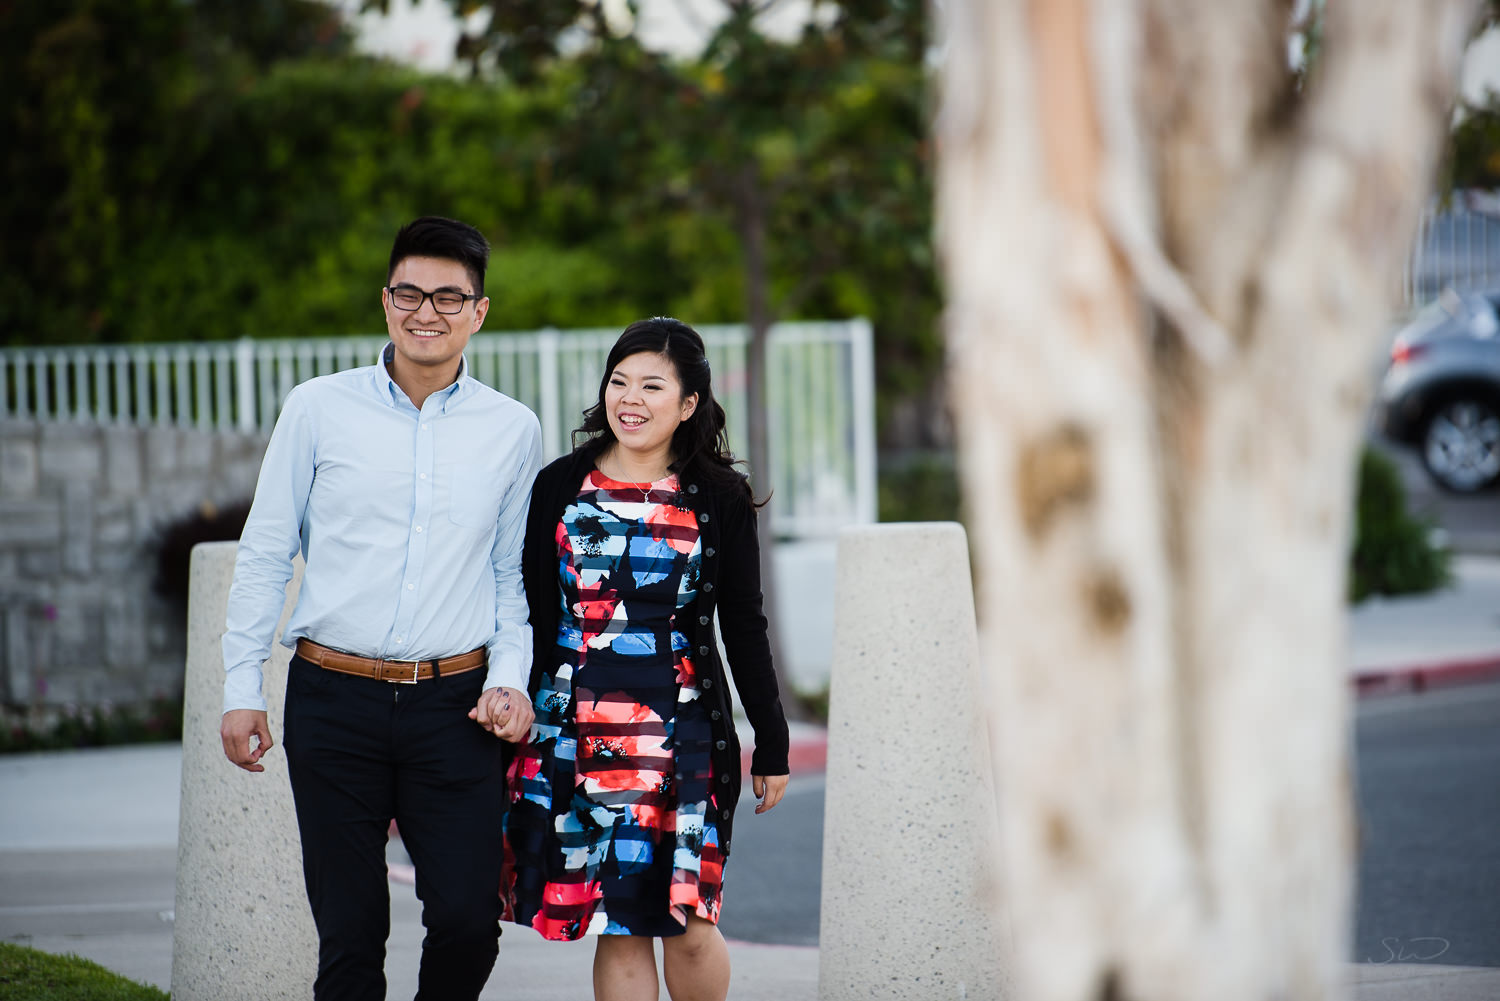 Surprise proposal. Cliffside proposal in Dana Point | Stanley Wu Photography Portrait & Wedding Photographer | Los Angeles, Orange County, Southern California